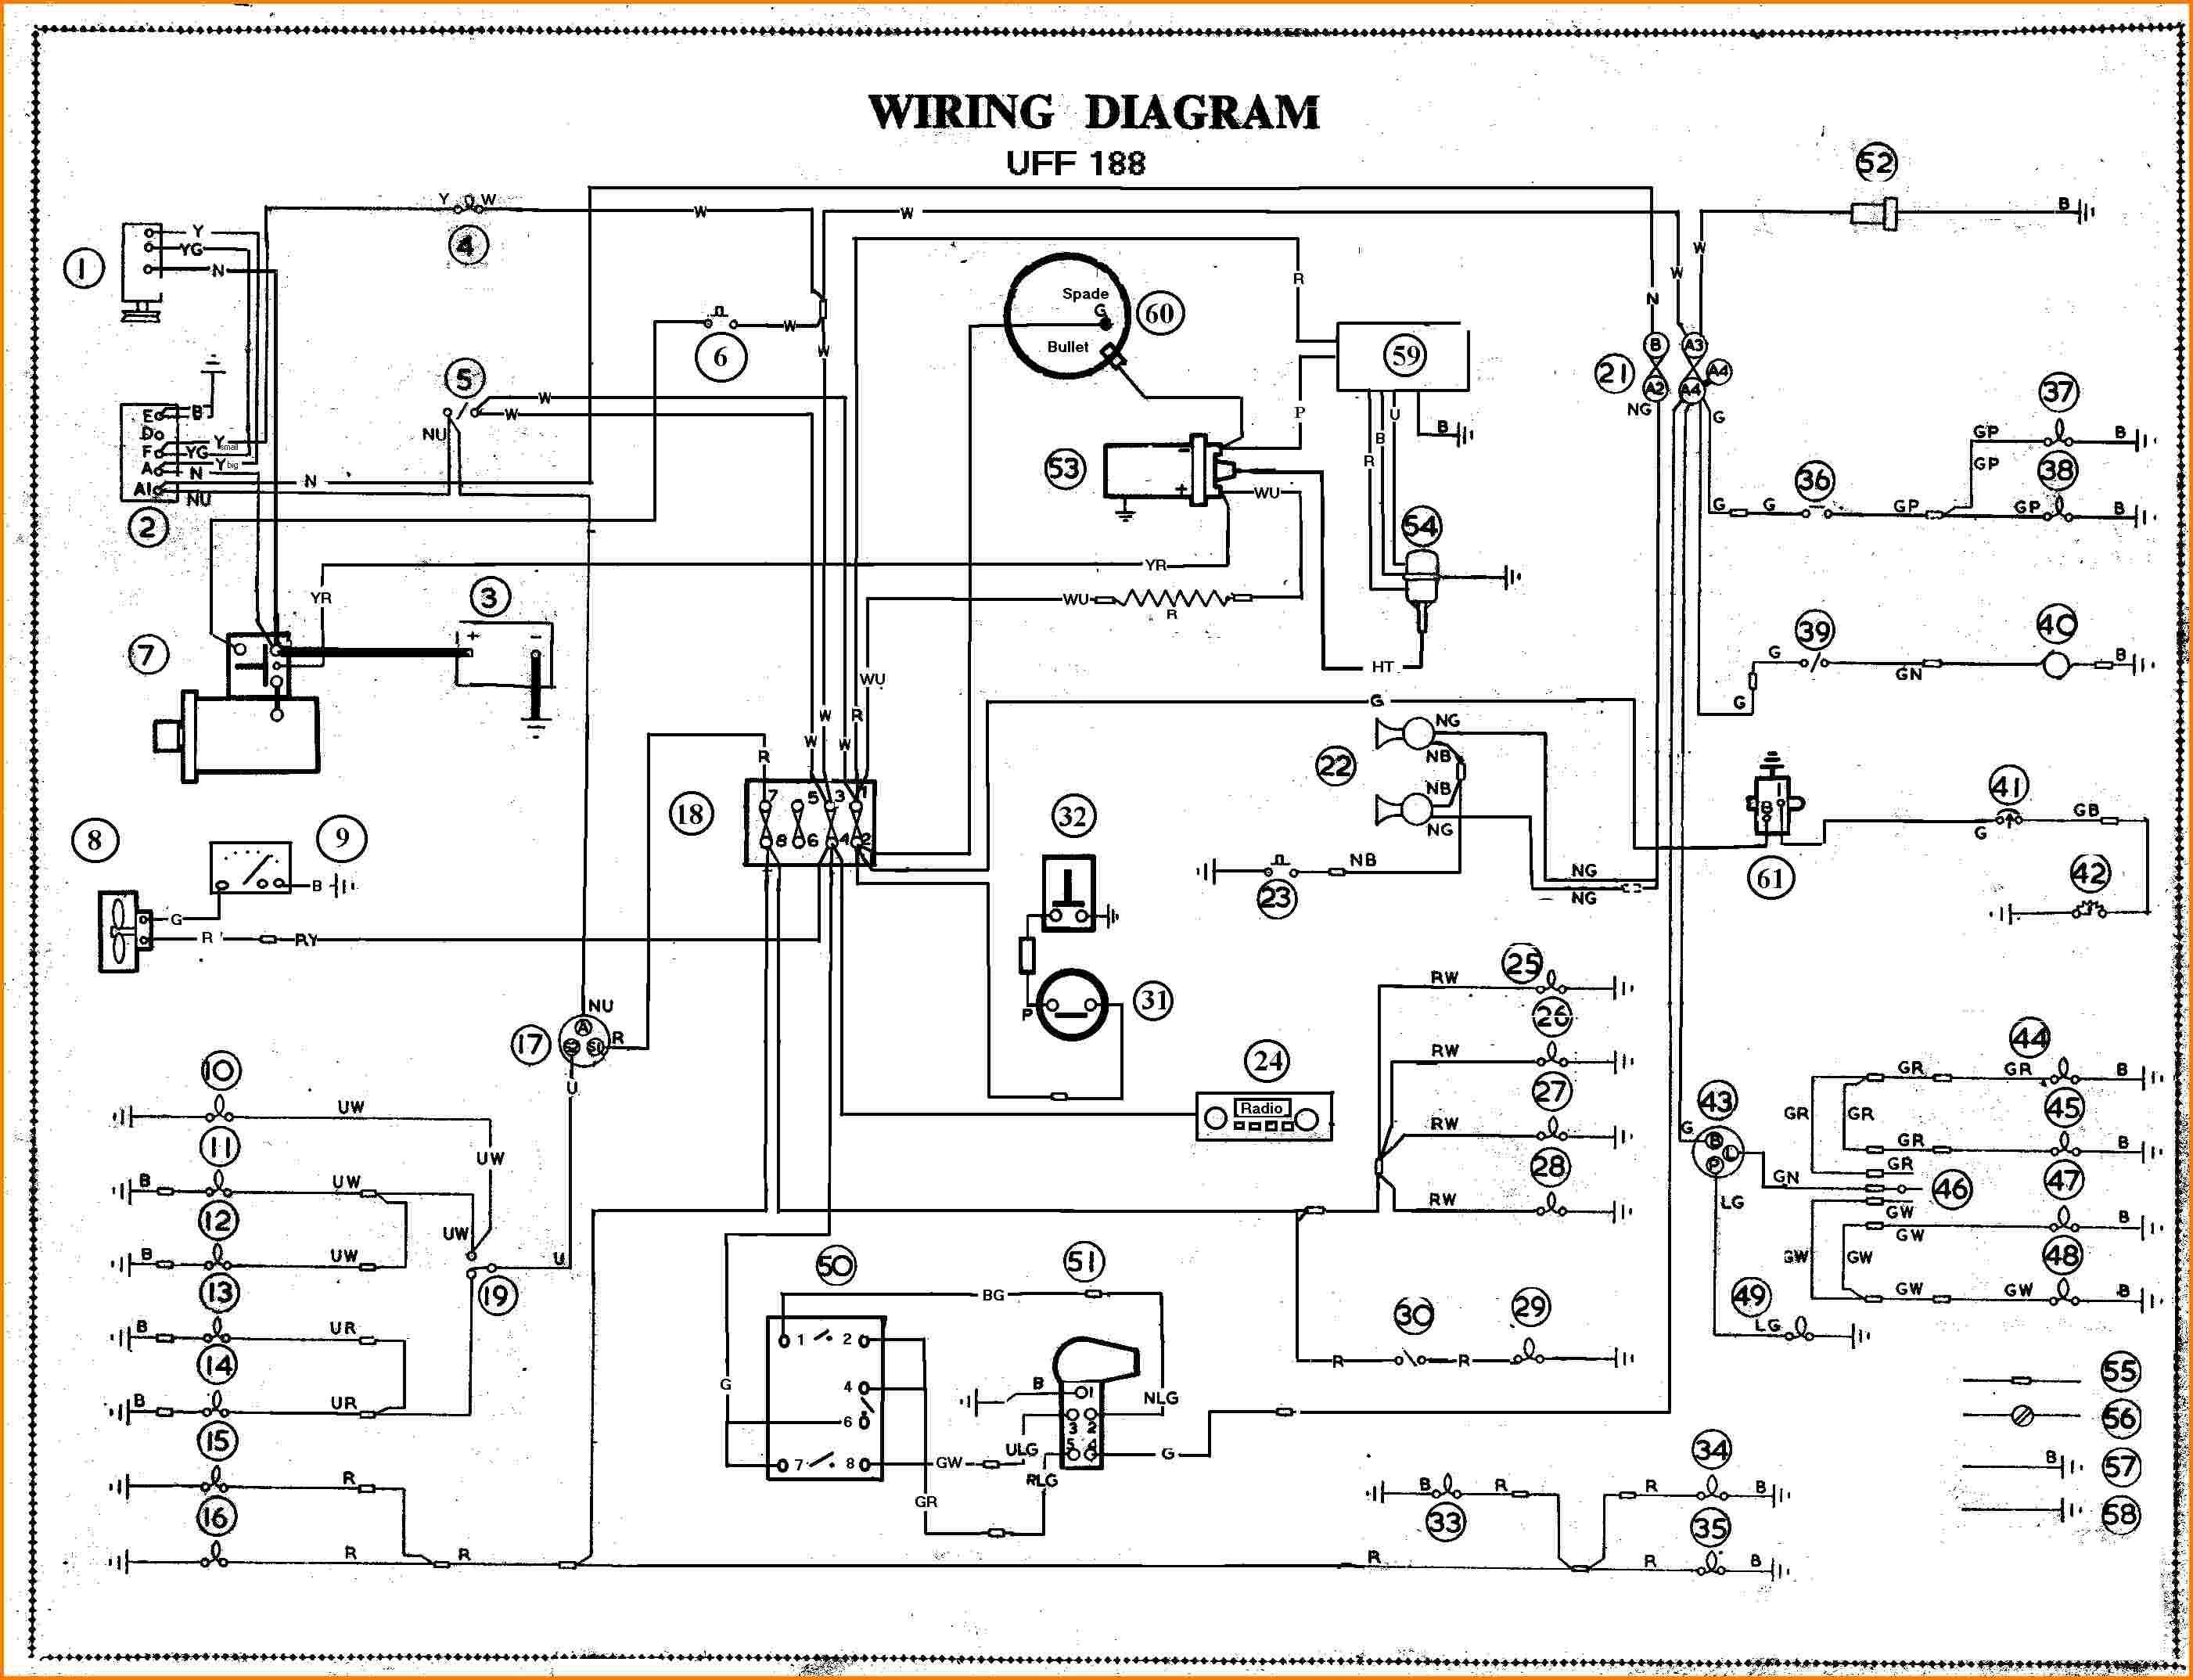 Car Wiring Diagram Free Download - 2010 Jeep Wrangler Unlimited Stereo  Wiring Harness for Wiring Diagram Schematicsjarwo-sopo-28.adateoriafemminista.it